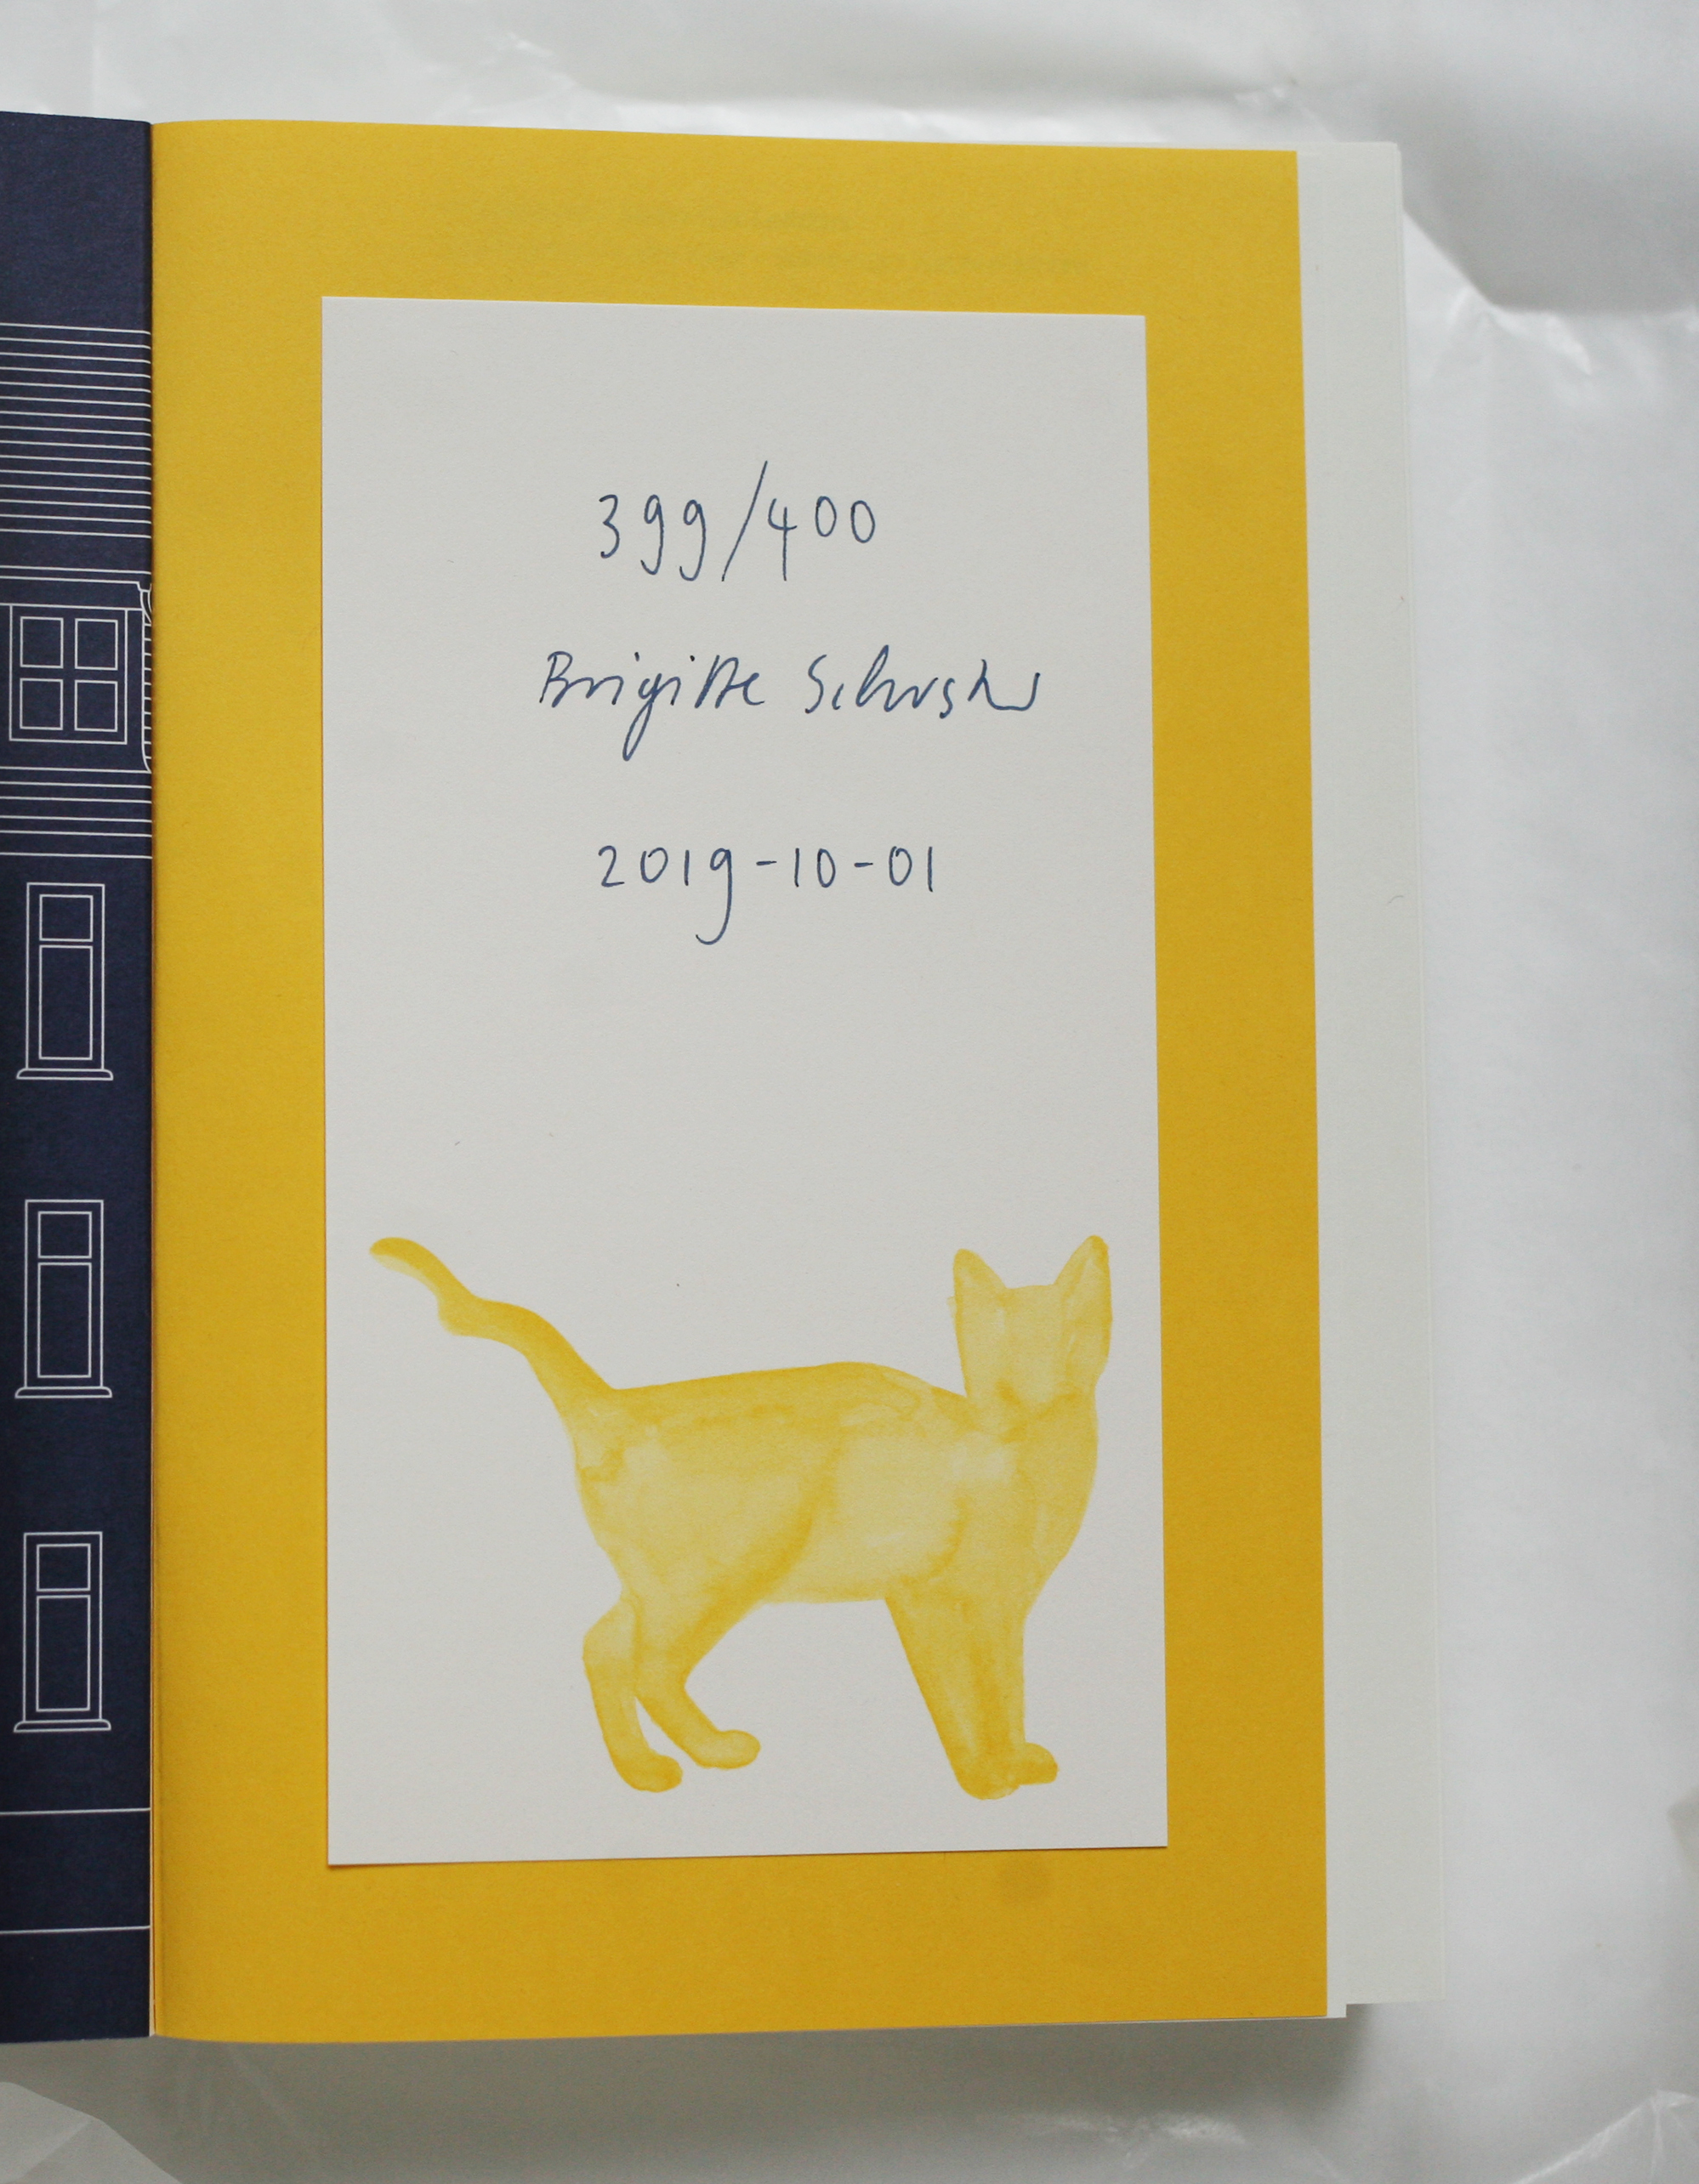 Swiss Cat Ladders Book Signed Copy